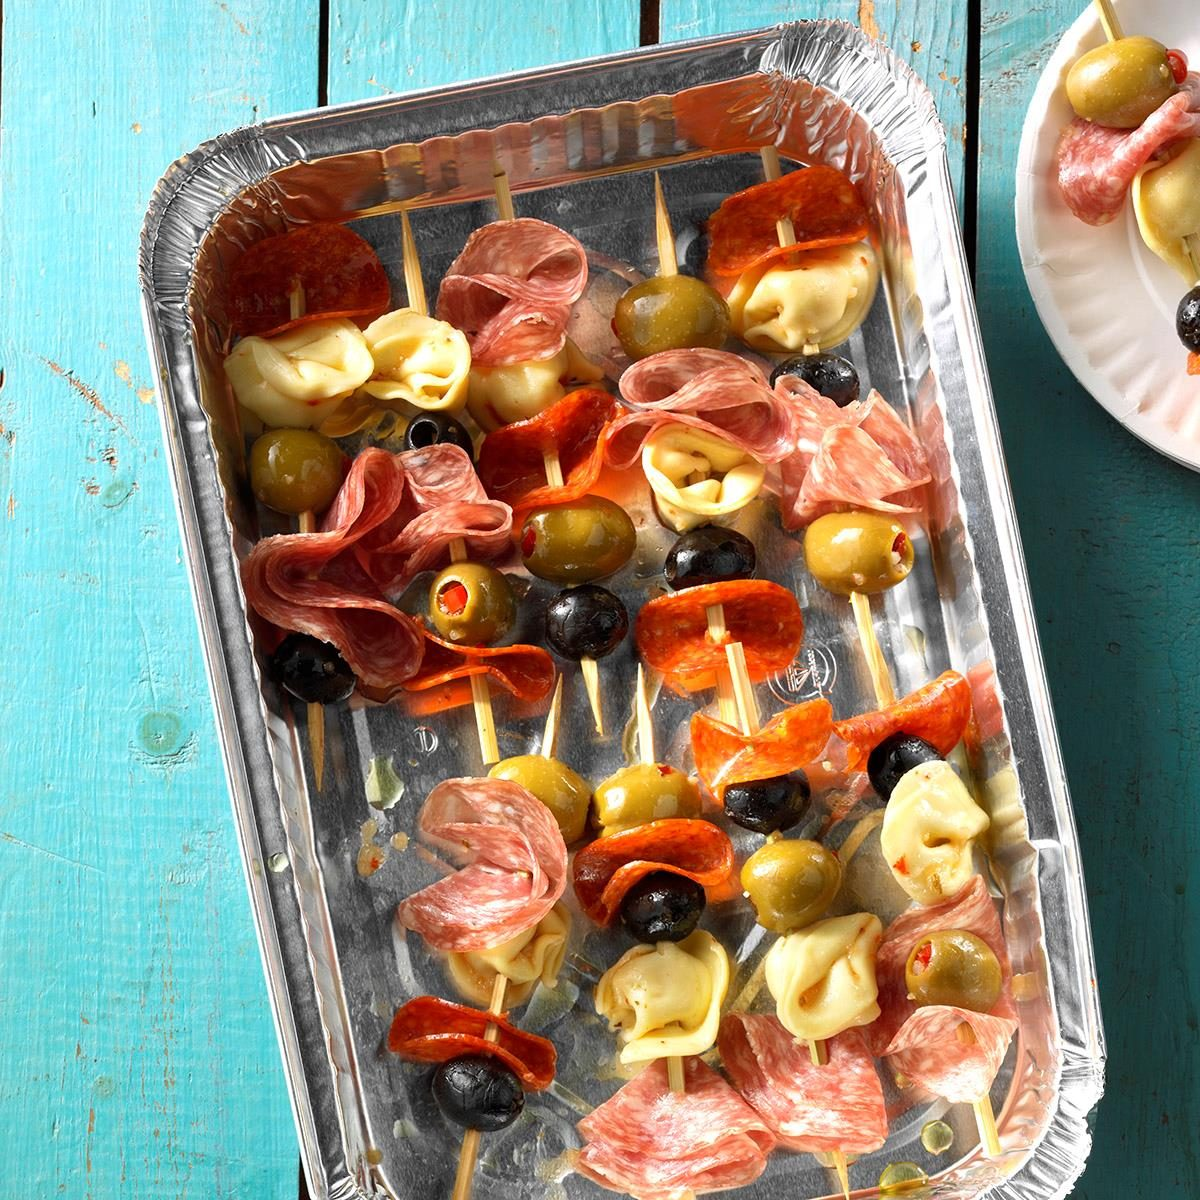 Easy School lunch ideas-Lunchtime Kabobs